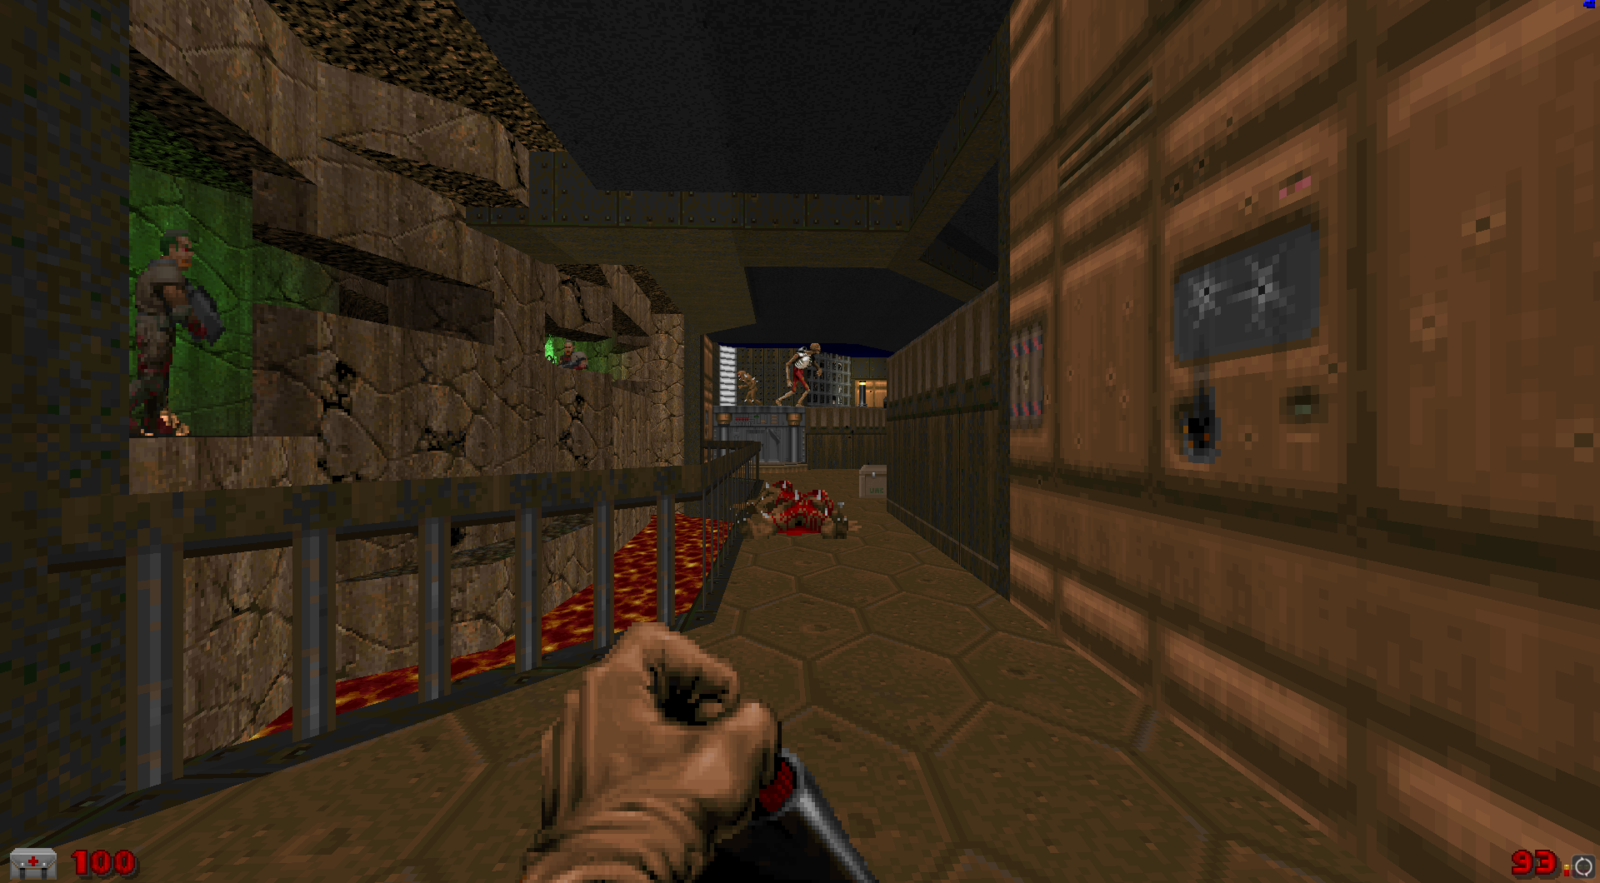 Screenshot_Doom_20180420_201947.png.9e59688495604c4a50454c355502a663.png